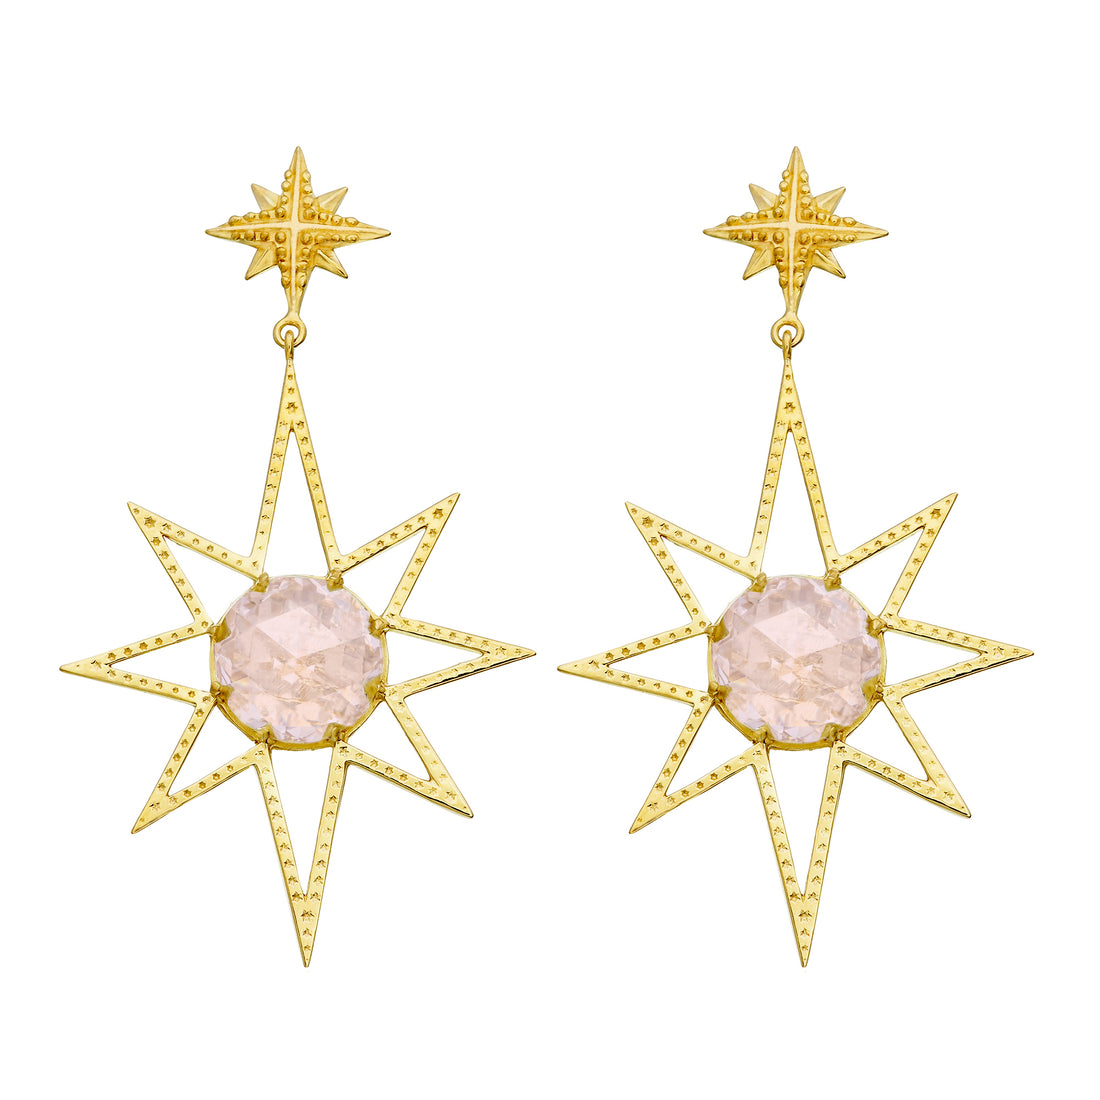 ZOE & MORGAN ROSE QUARTZ SUNBURST EARRING